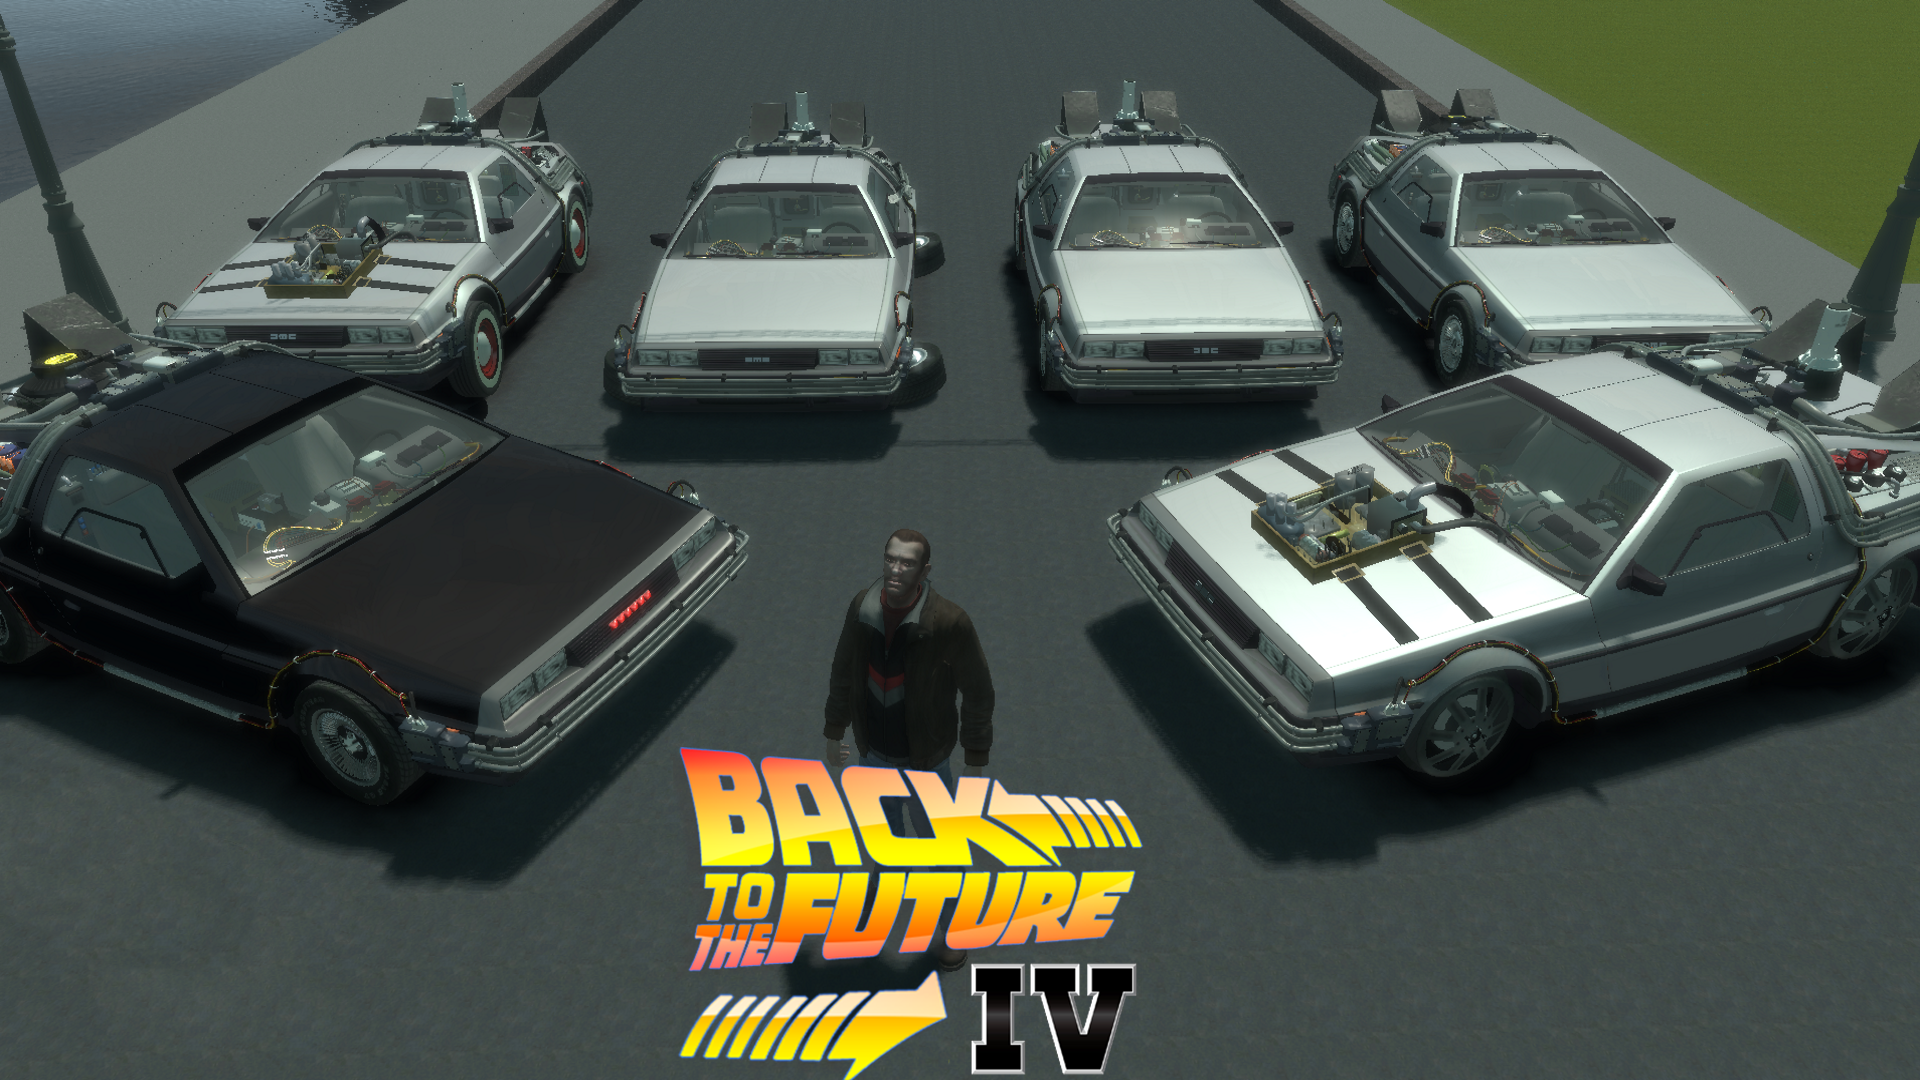 cool btlc wallpaper (1080p) all deloreans image - back to the future